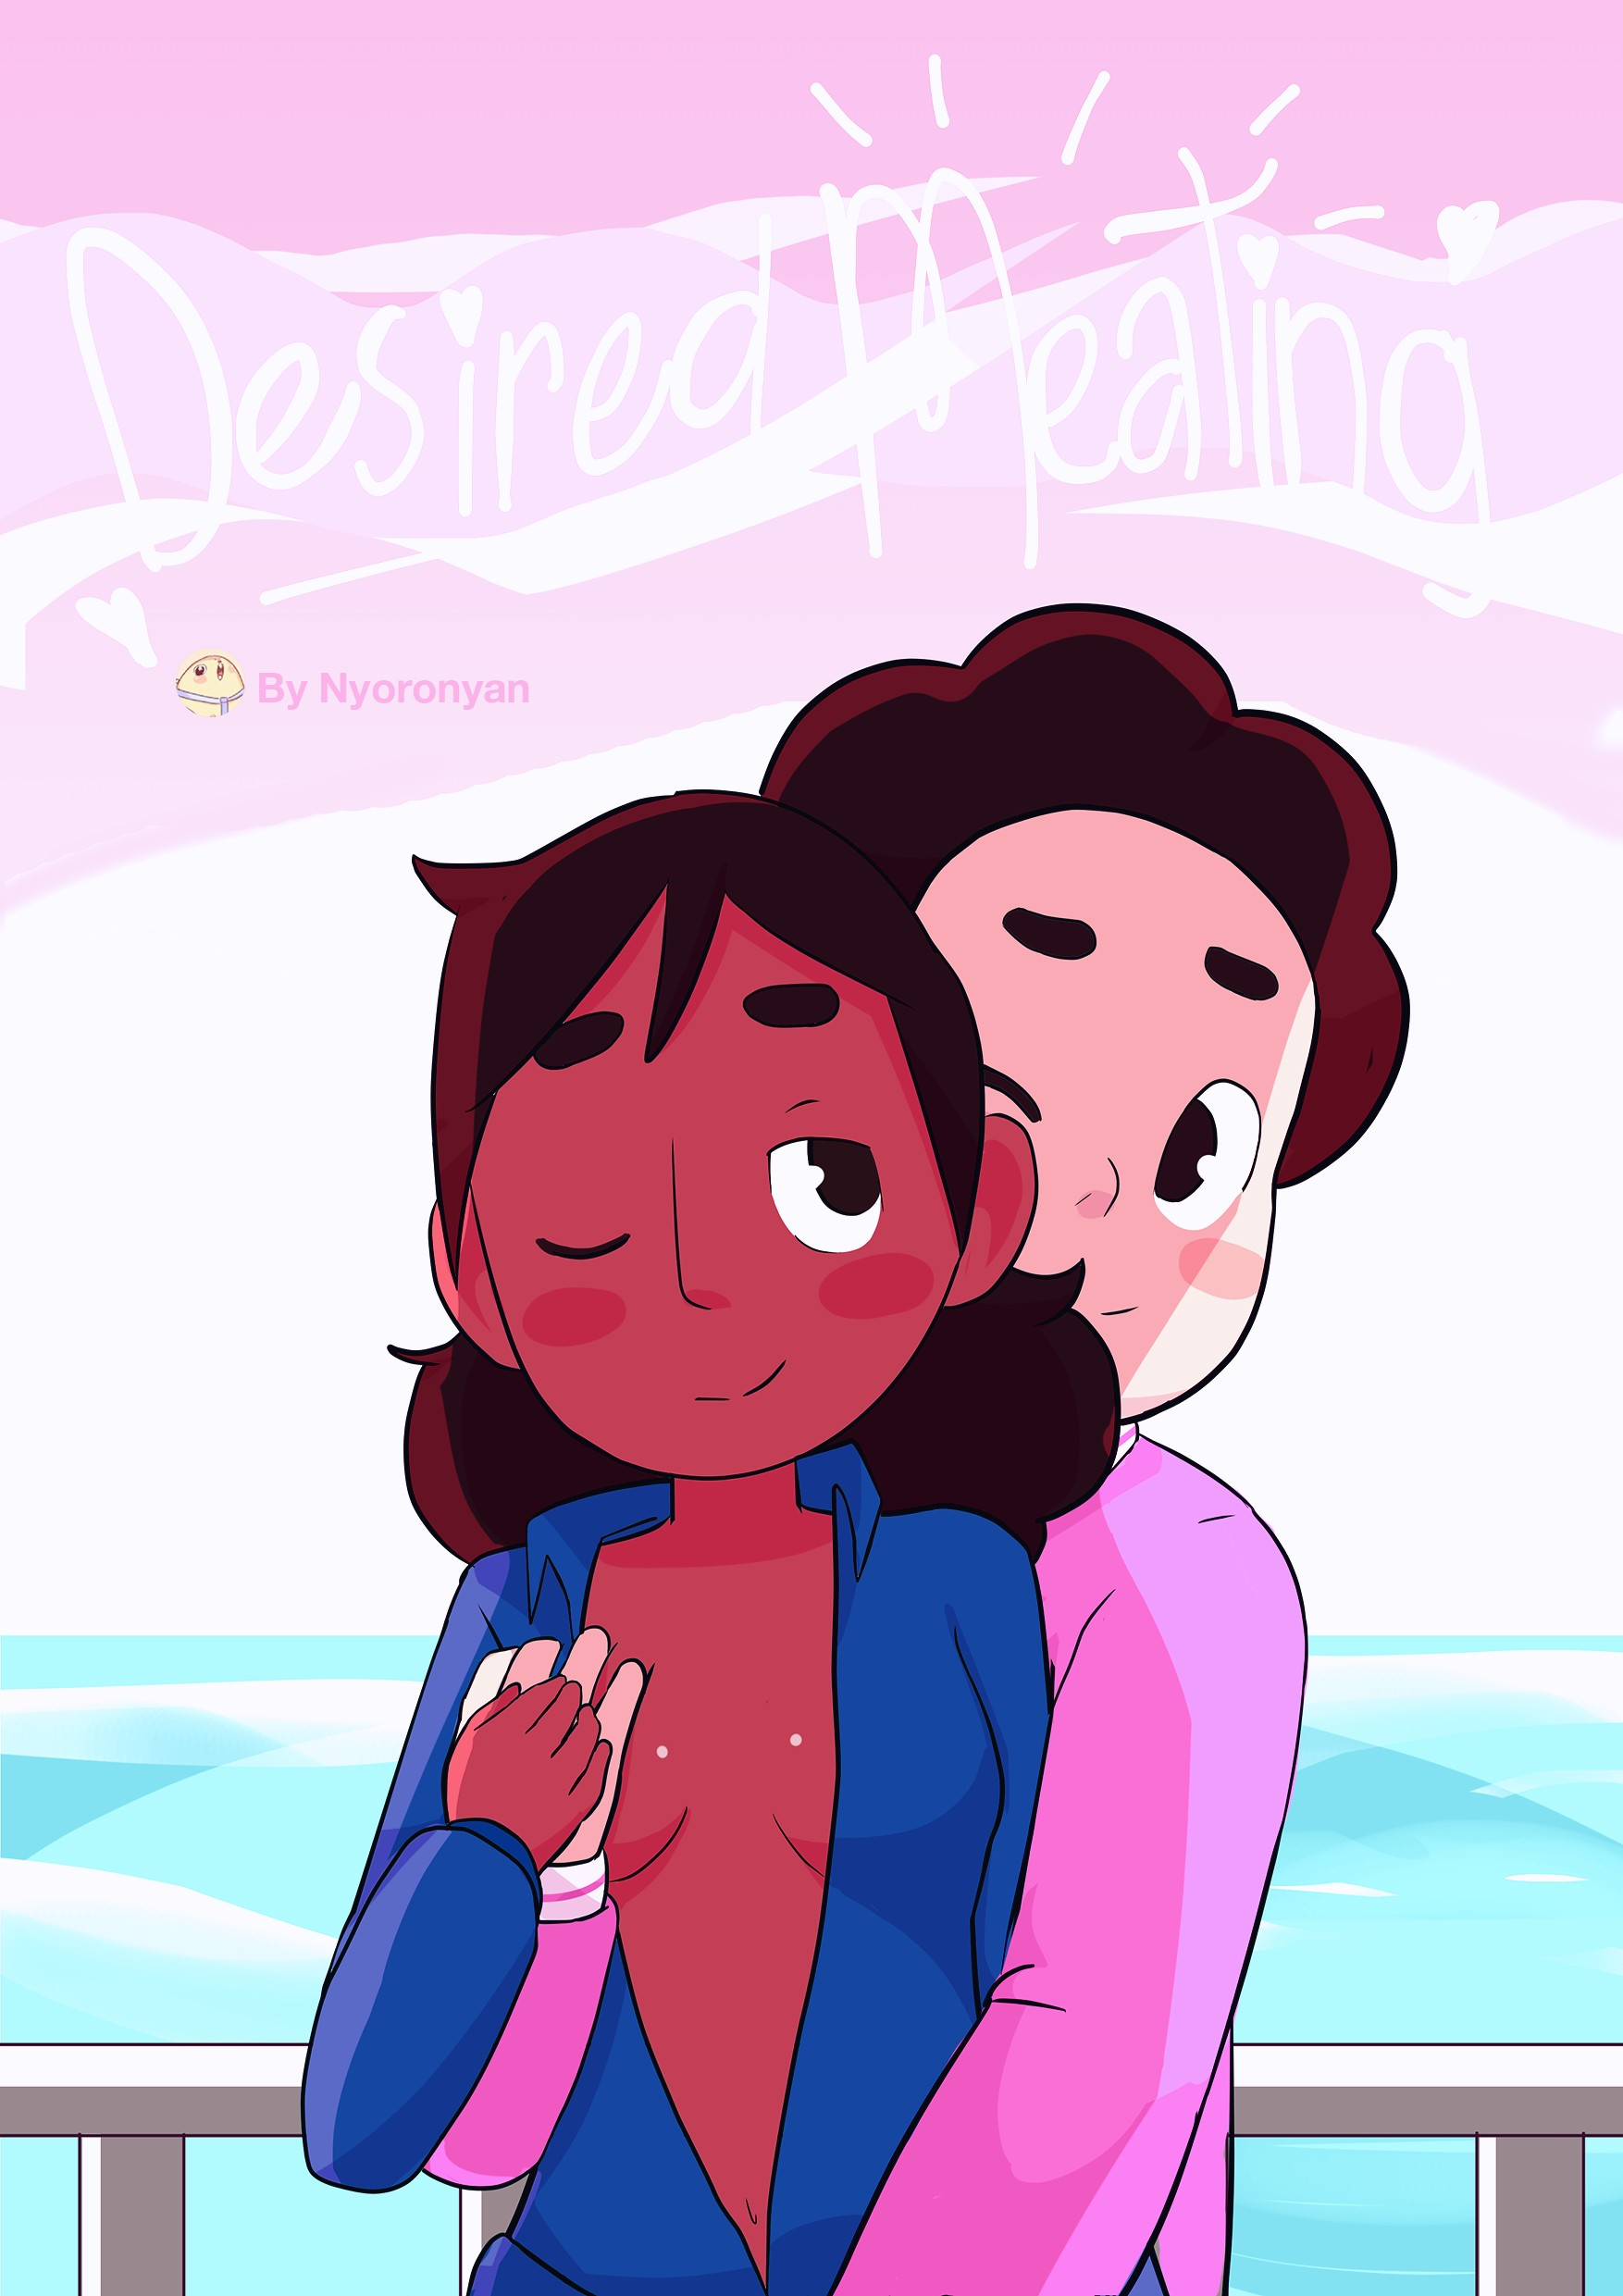 Desired Meating porn comic page 01 on category Steven Universe